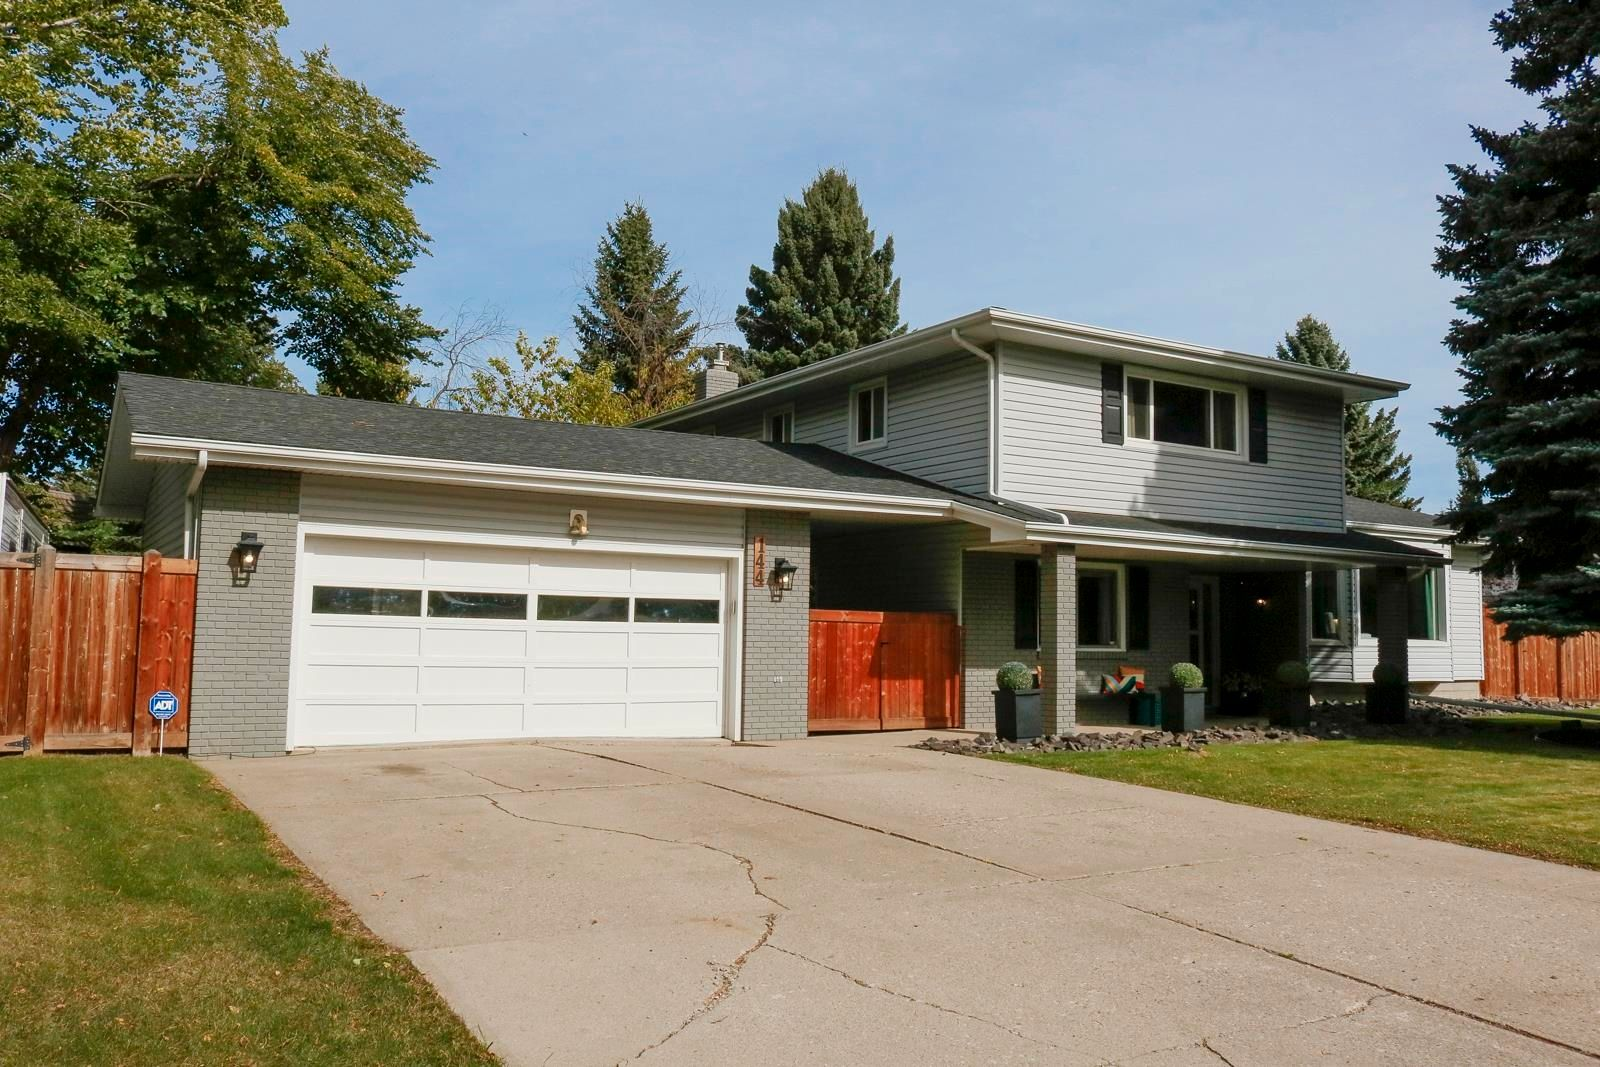 Main Photo: 144 QUESNELL Crescent in Edmonton: Zone 22 House for sale : MLS®# E4265039